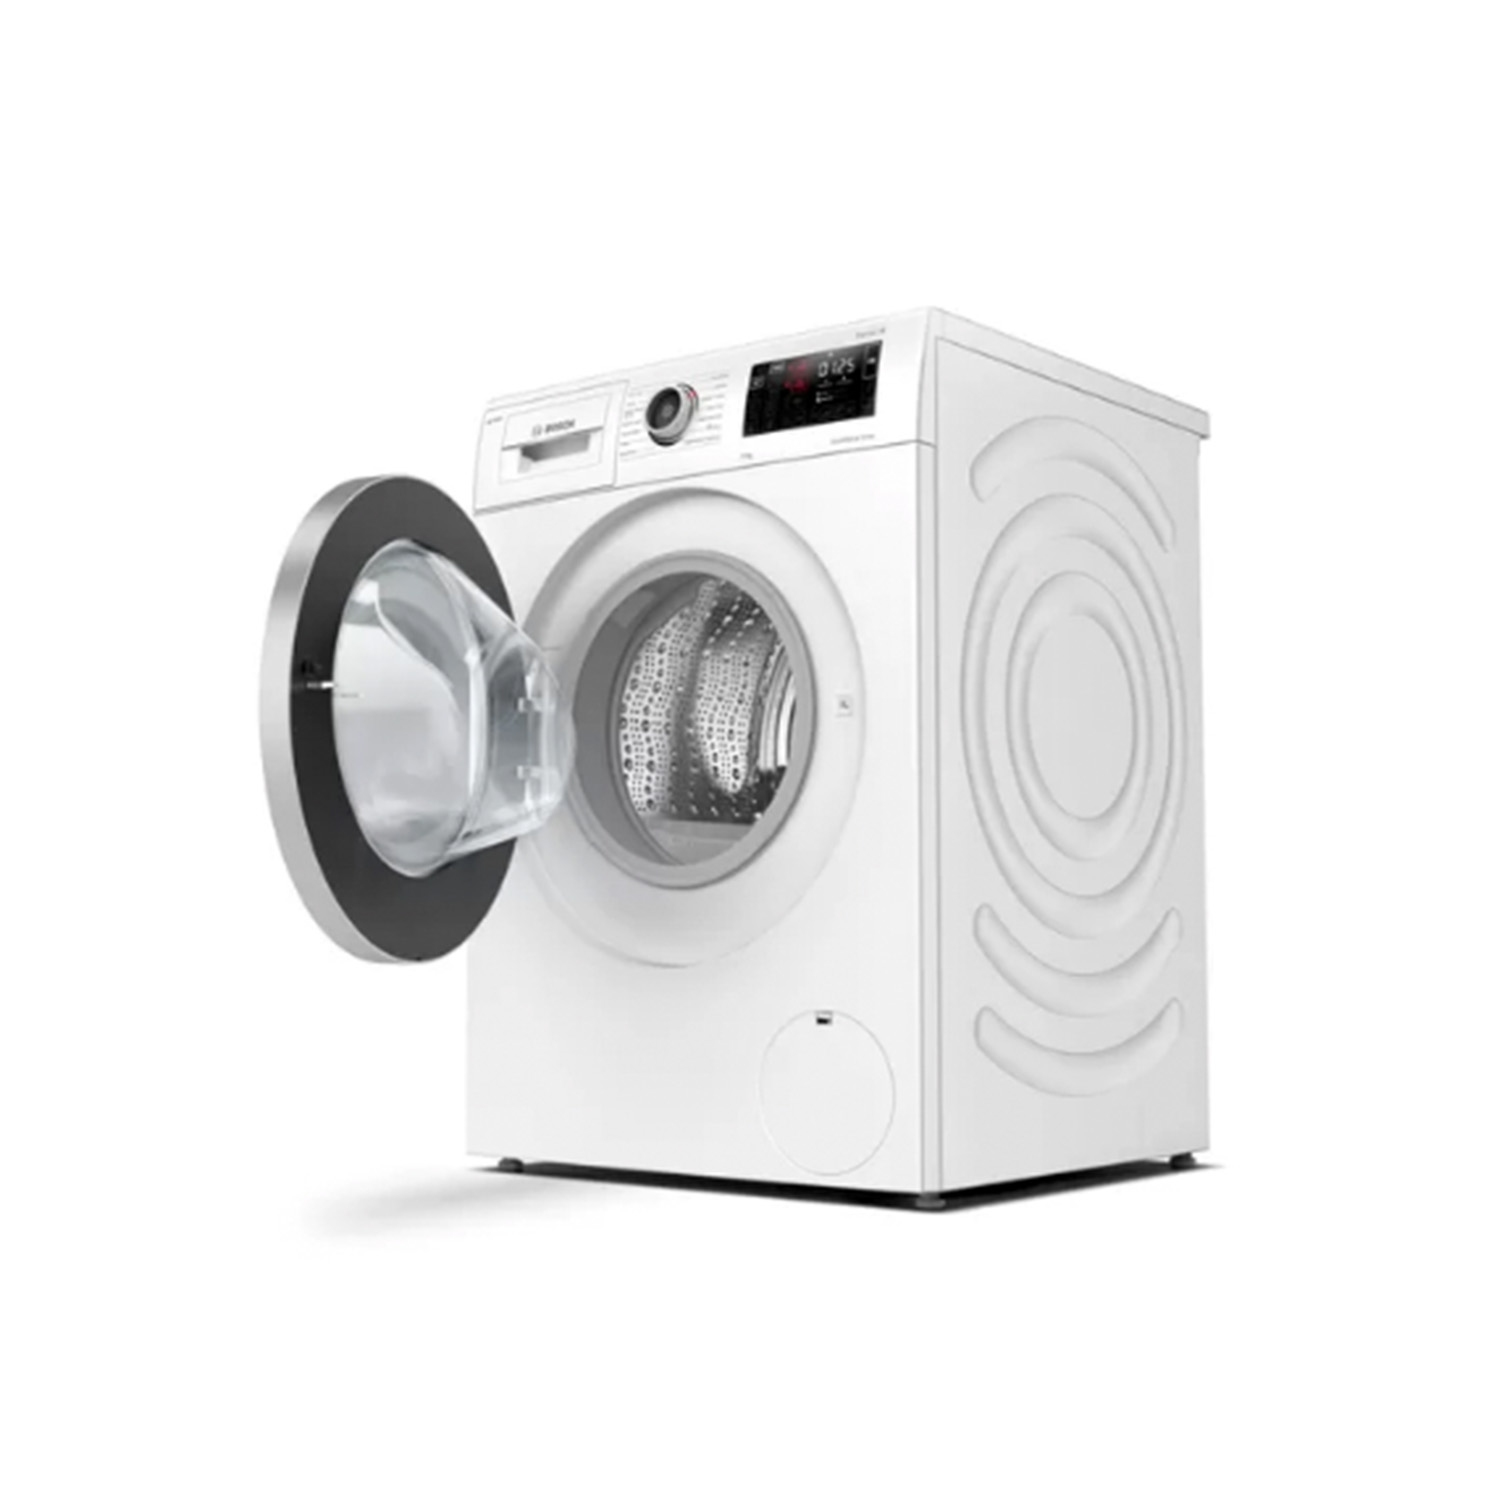 Bosch WAU28PH9GB 9kg 1400 Spin Washing Machine with EcoSilence Drive - White - 6